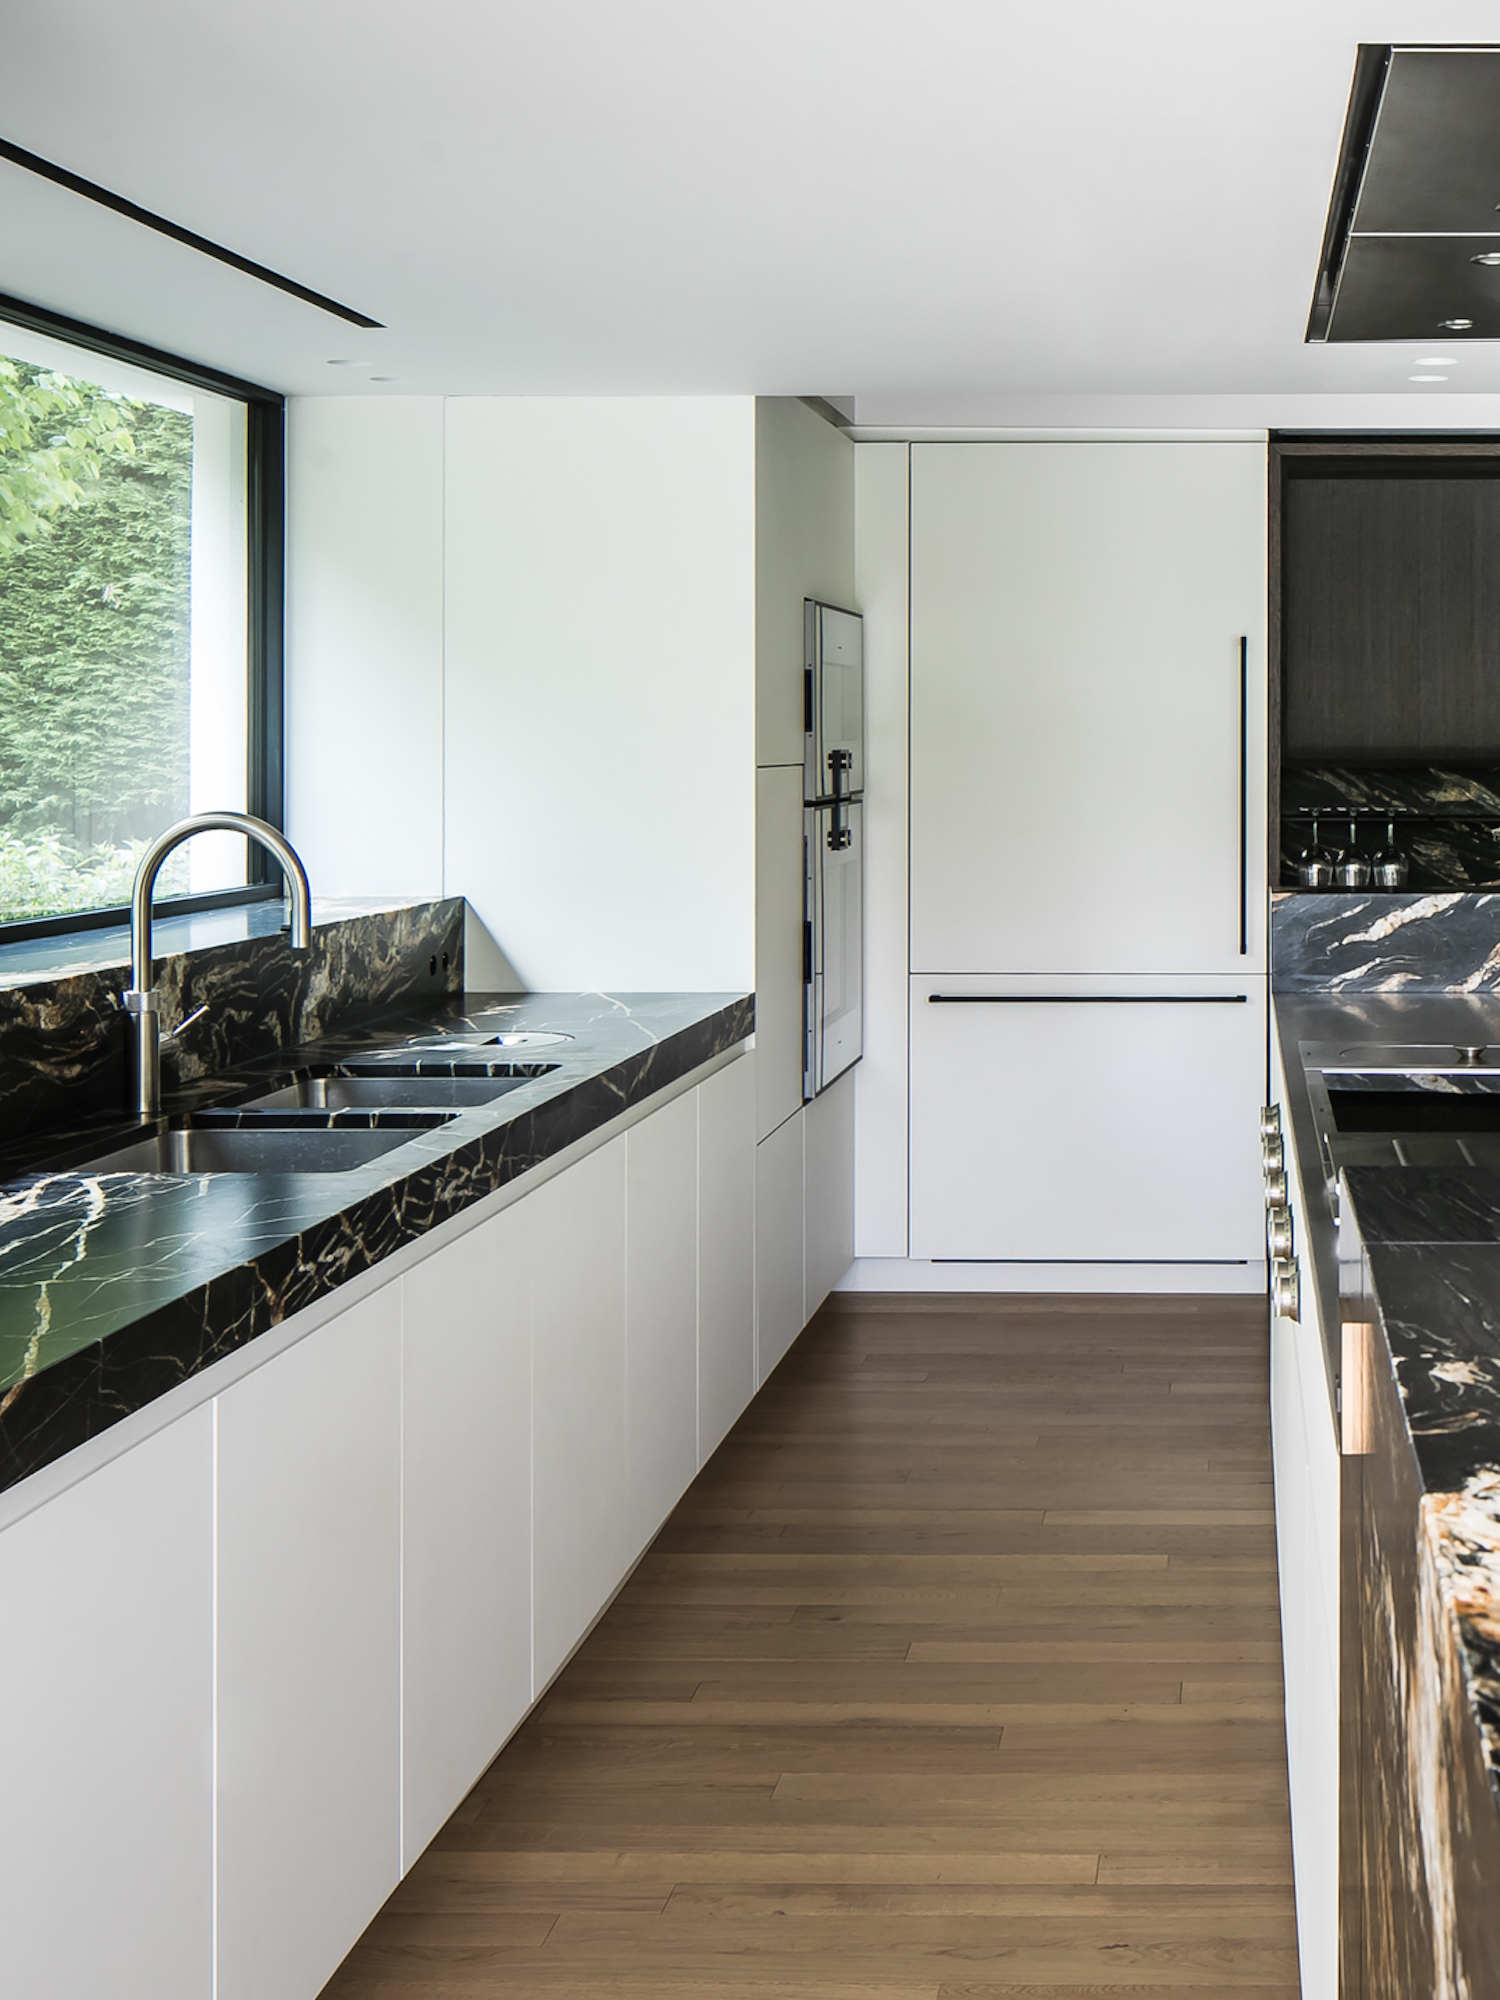 est living studio p belgian kitchens 5